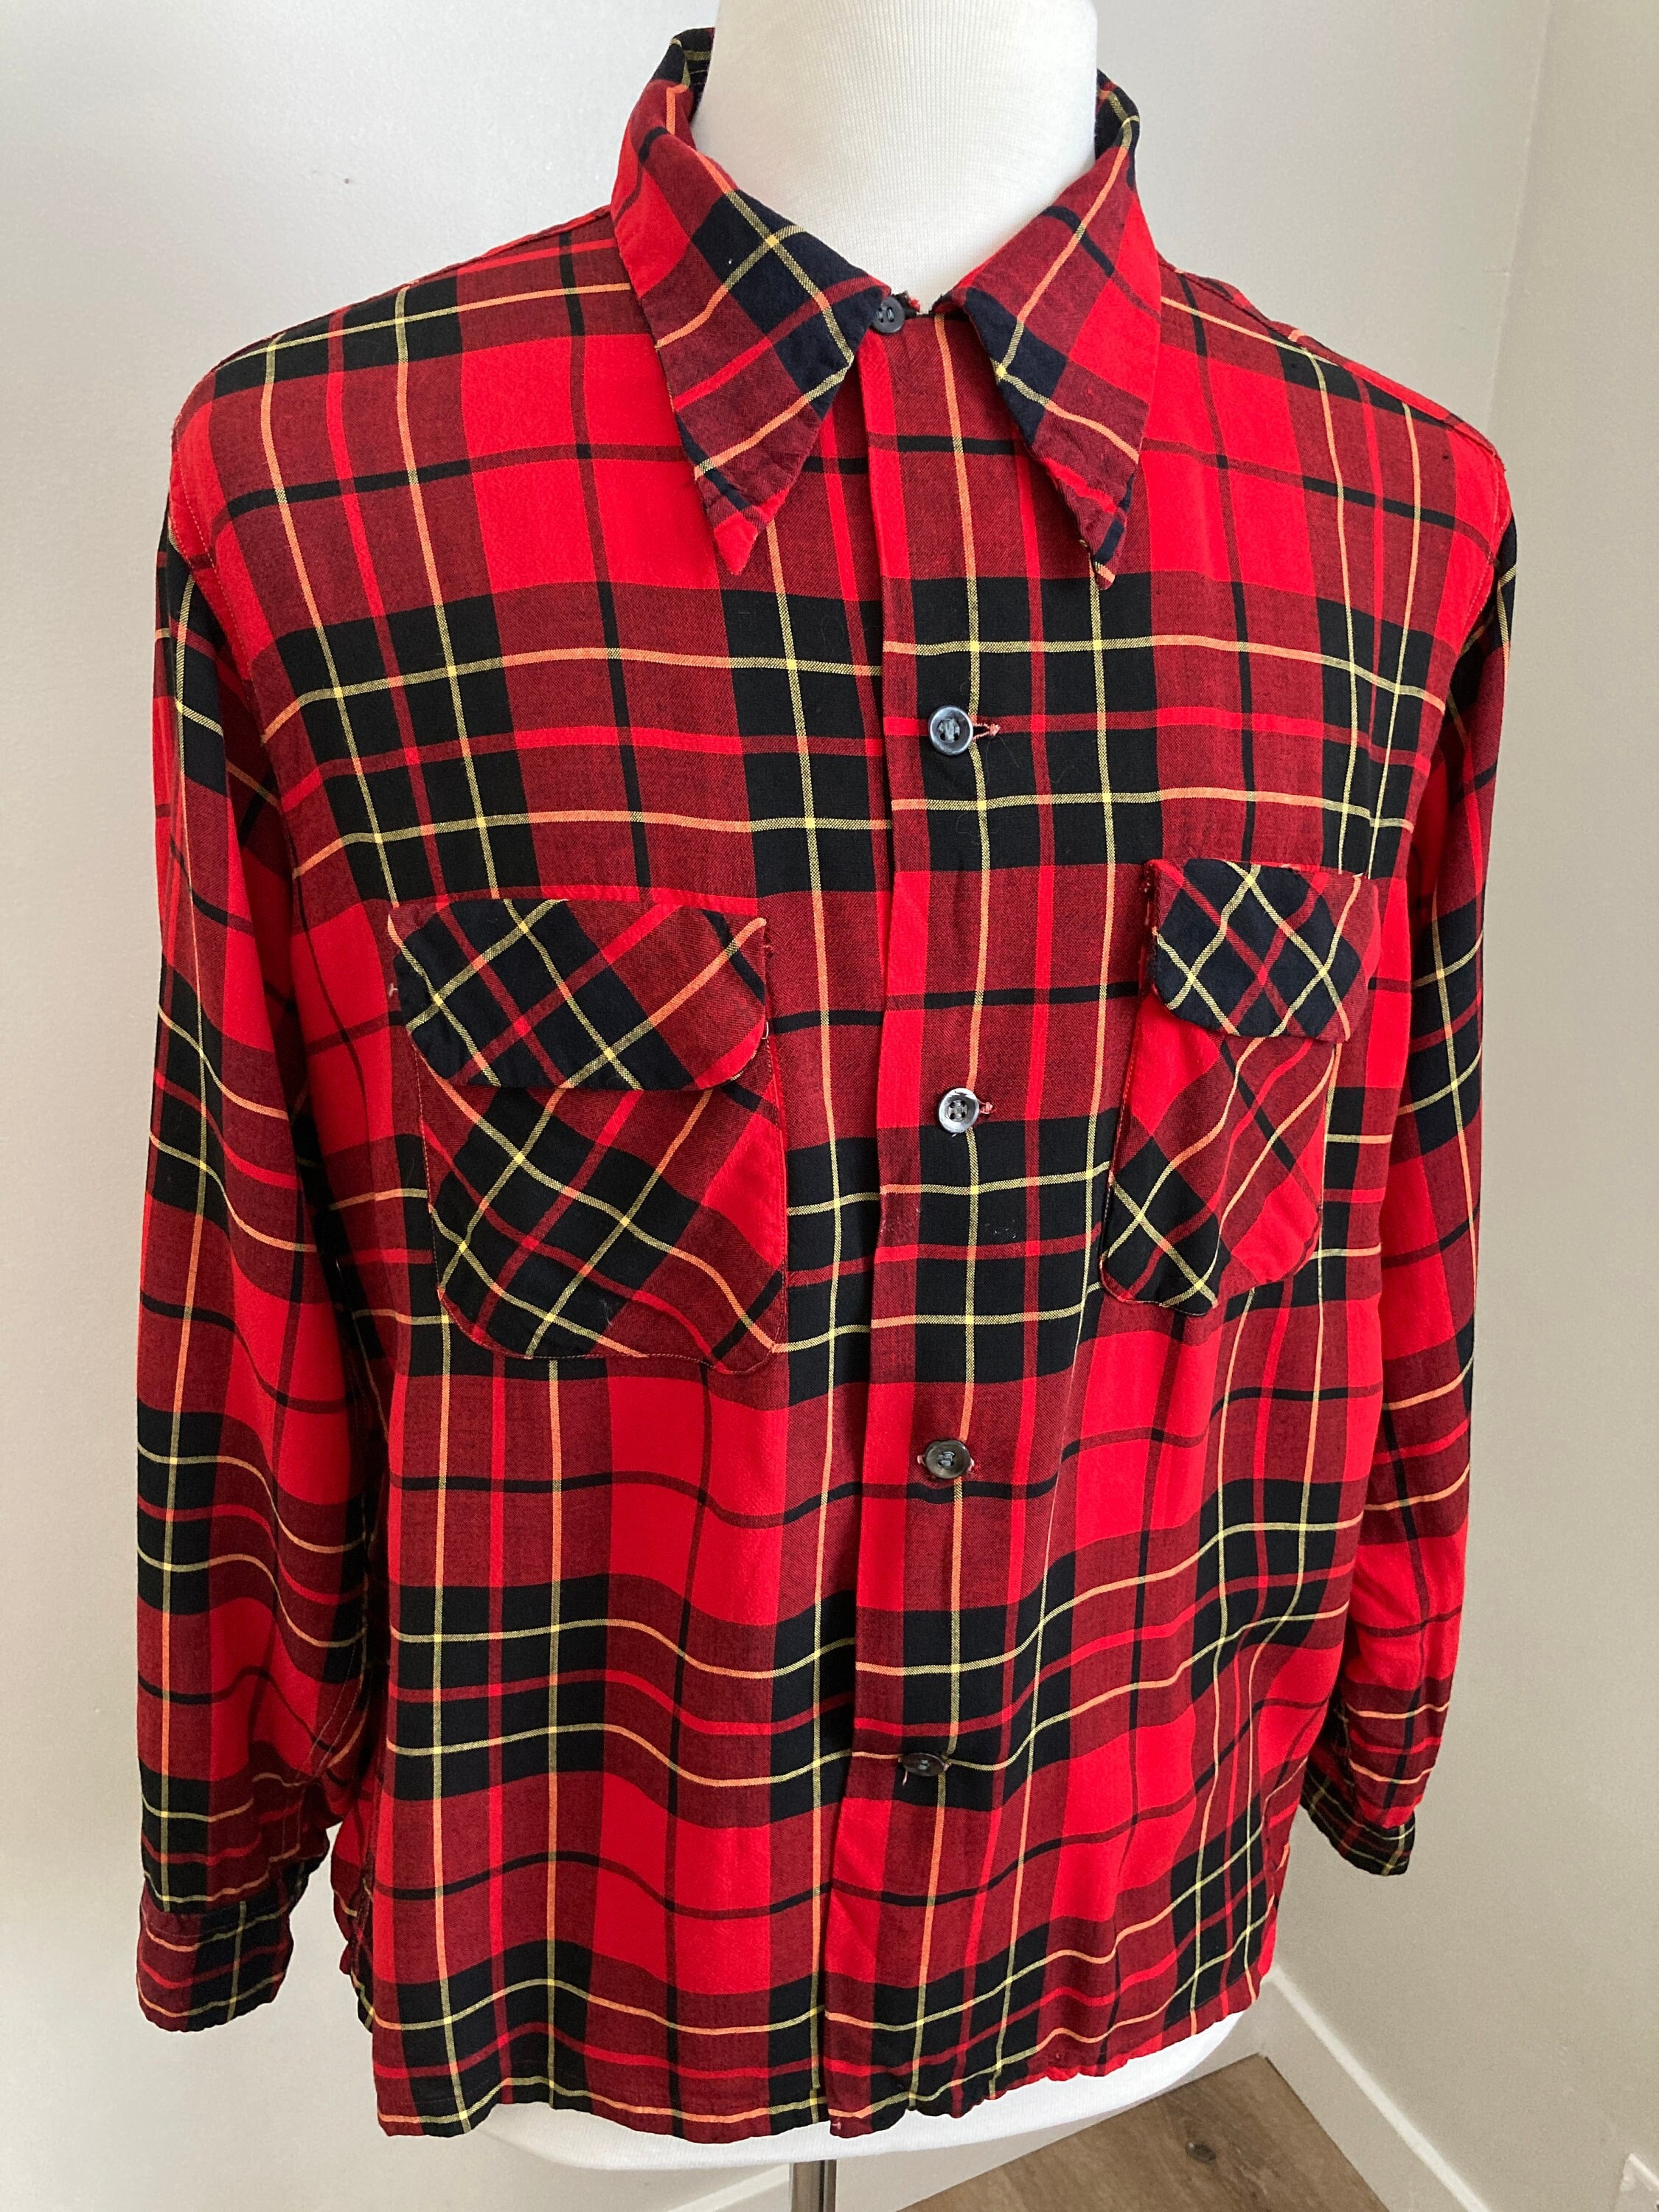 1940s Men's Shirts, Sweaters, Vests 1940S Tulane Sportswear Red  Black Buffalo Plaid Long Sleeve Shirt With Flap Pockets-L $55.00 AT vintagedancer.com